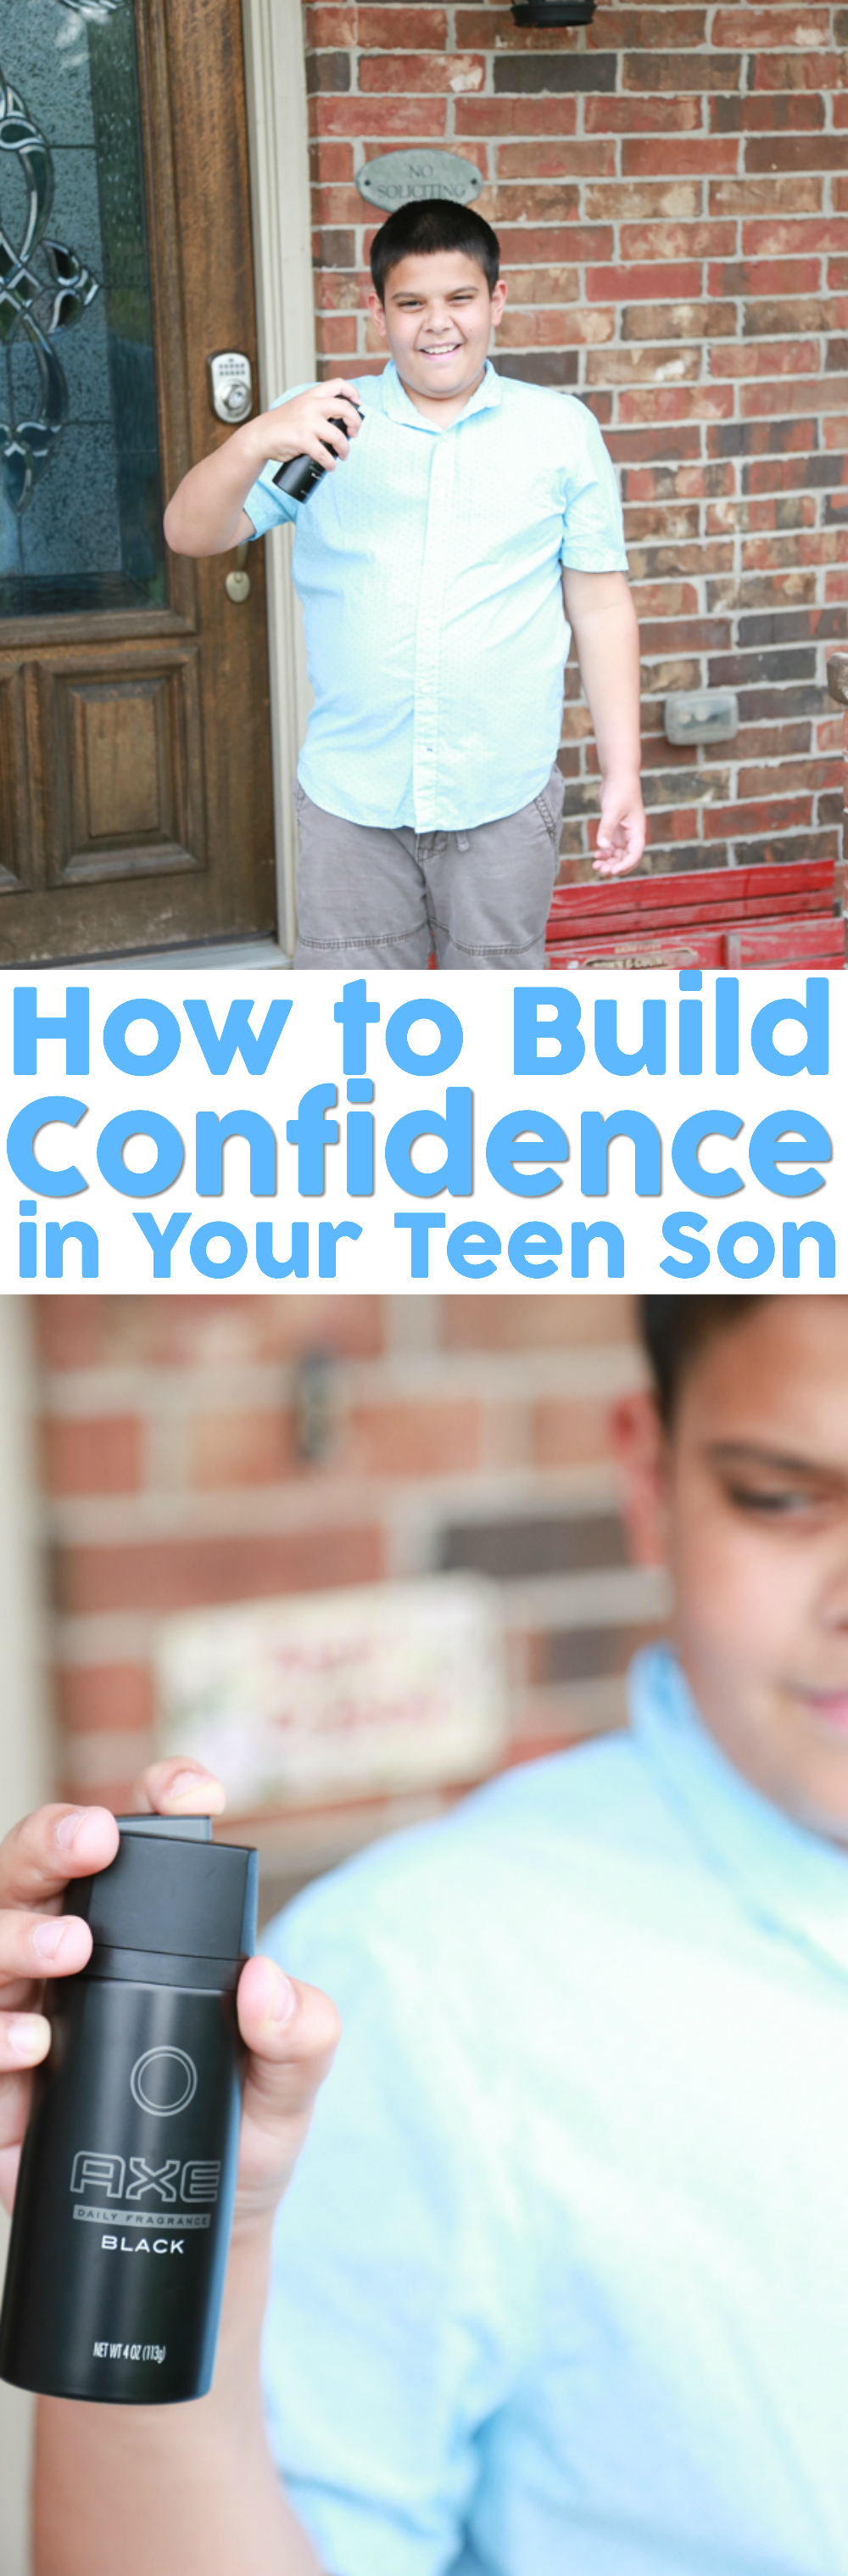 Realizing your son will soon be a teenager can be scary for the faint of heart. Here are some tips for how to build confidence in your teen son.